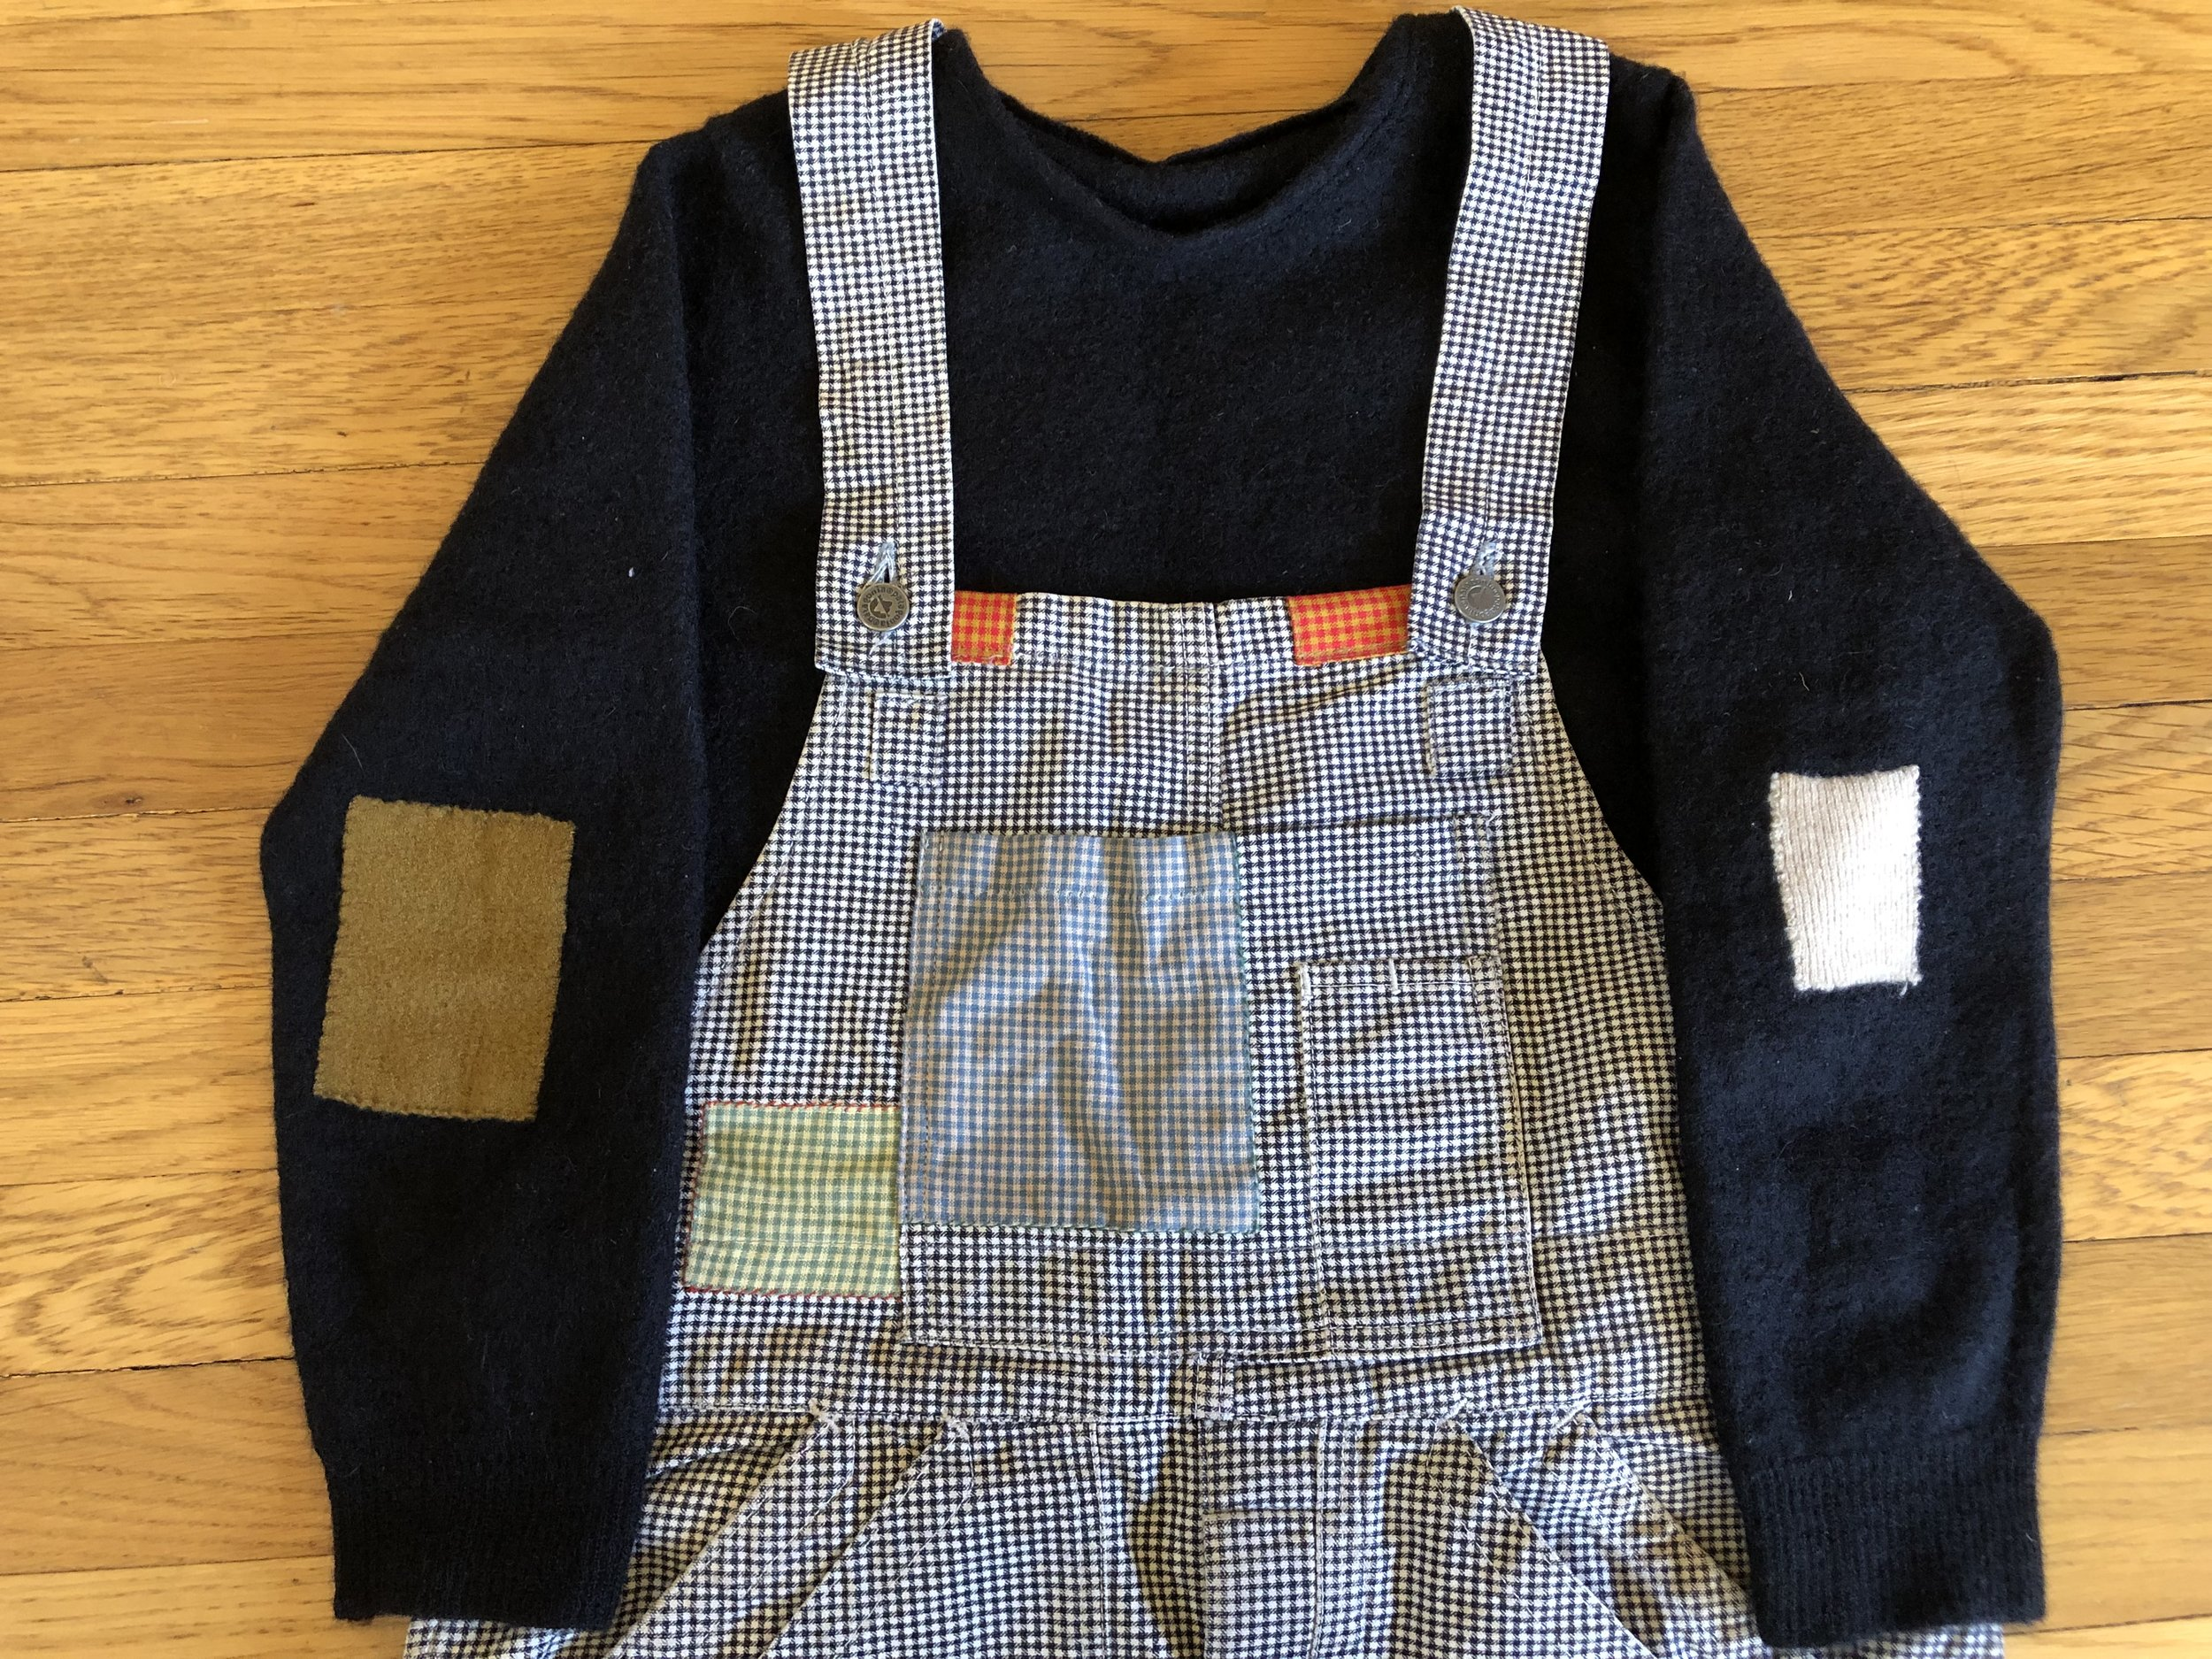 How cute are these mended overalls!?